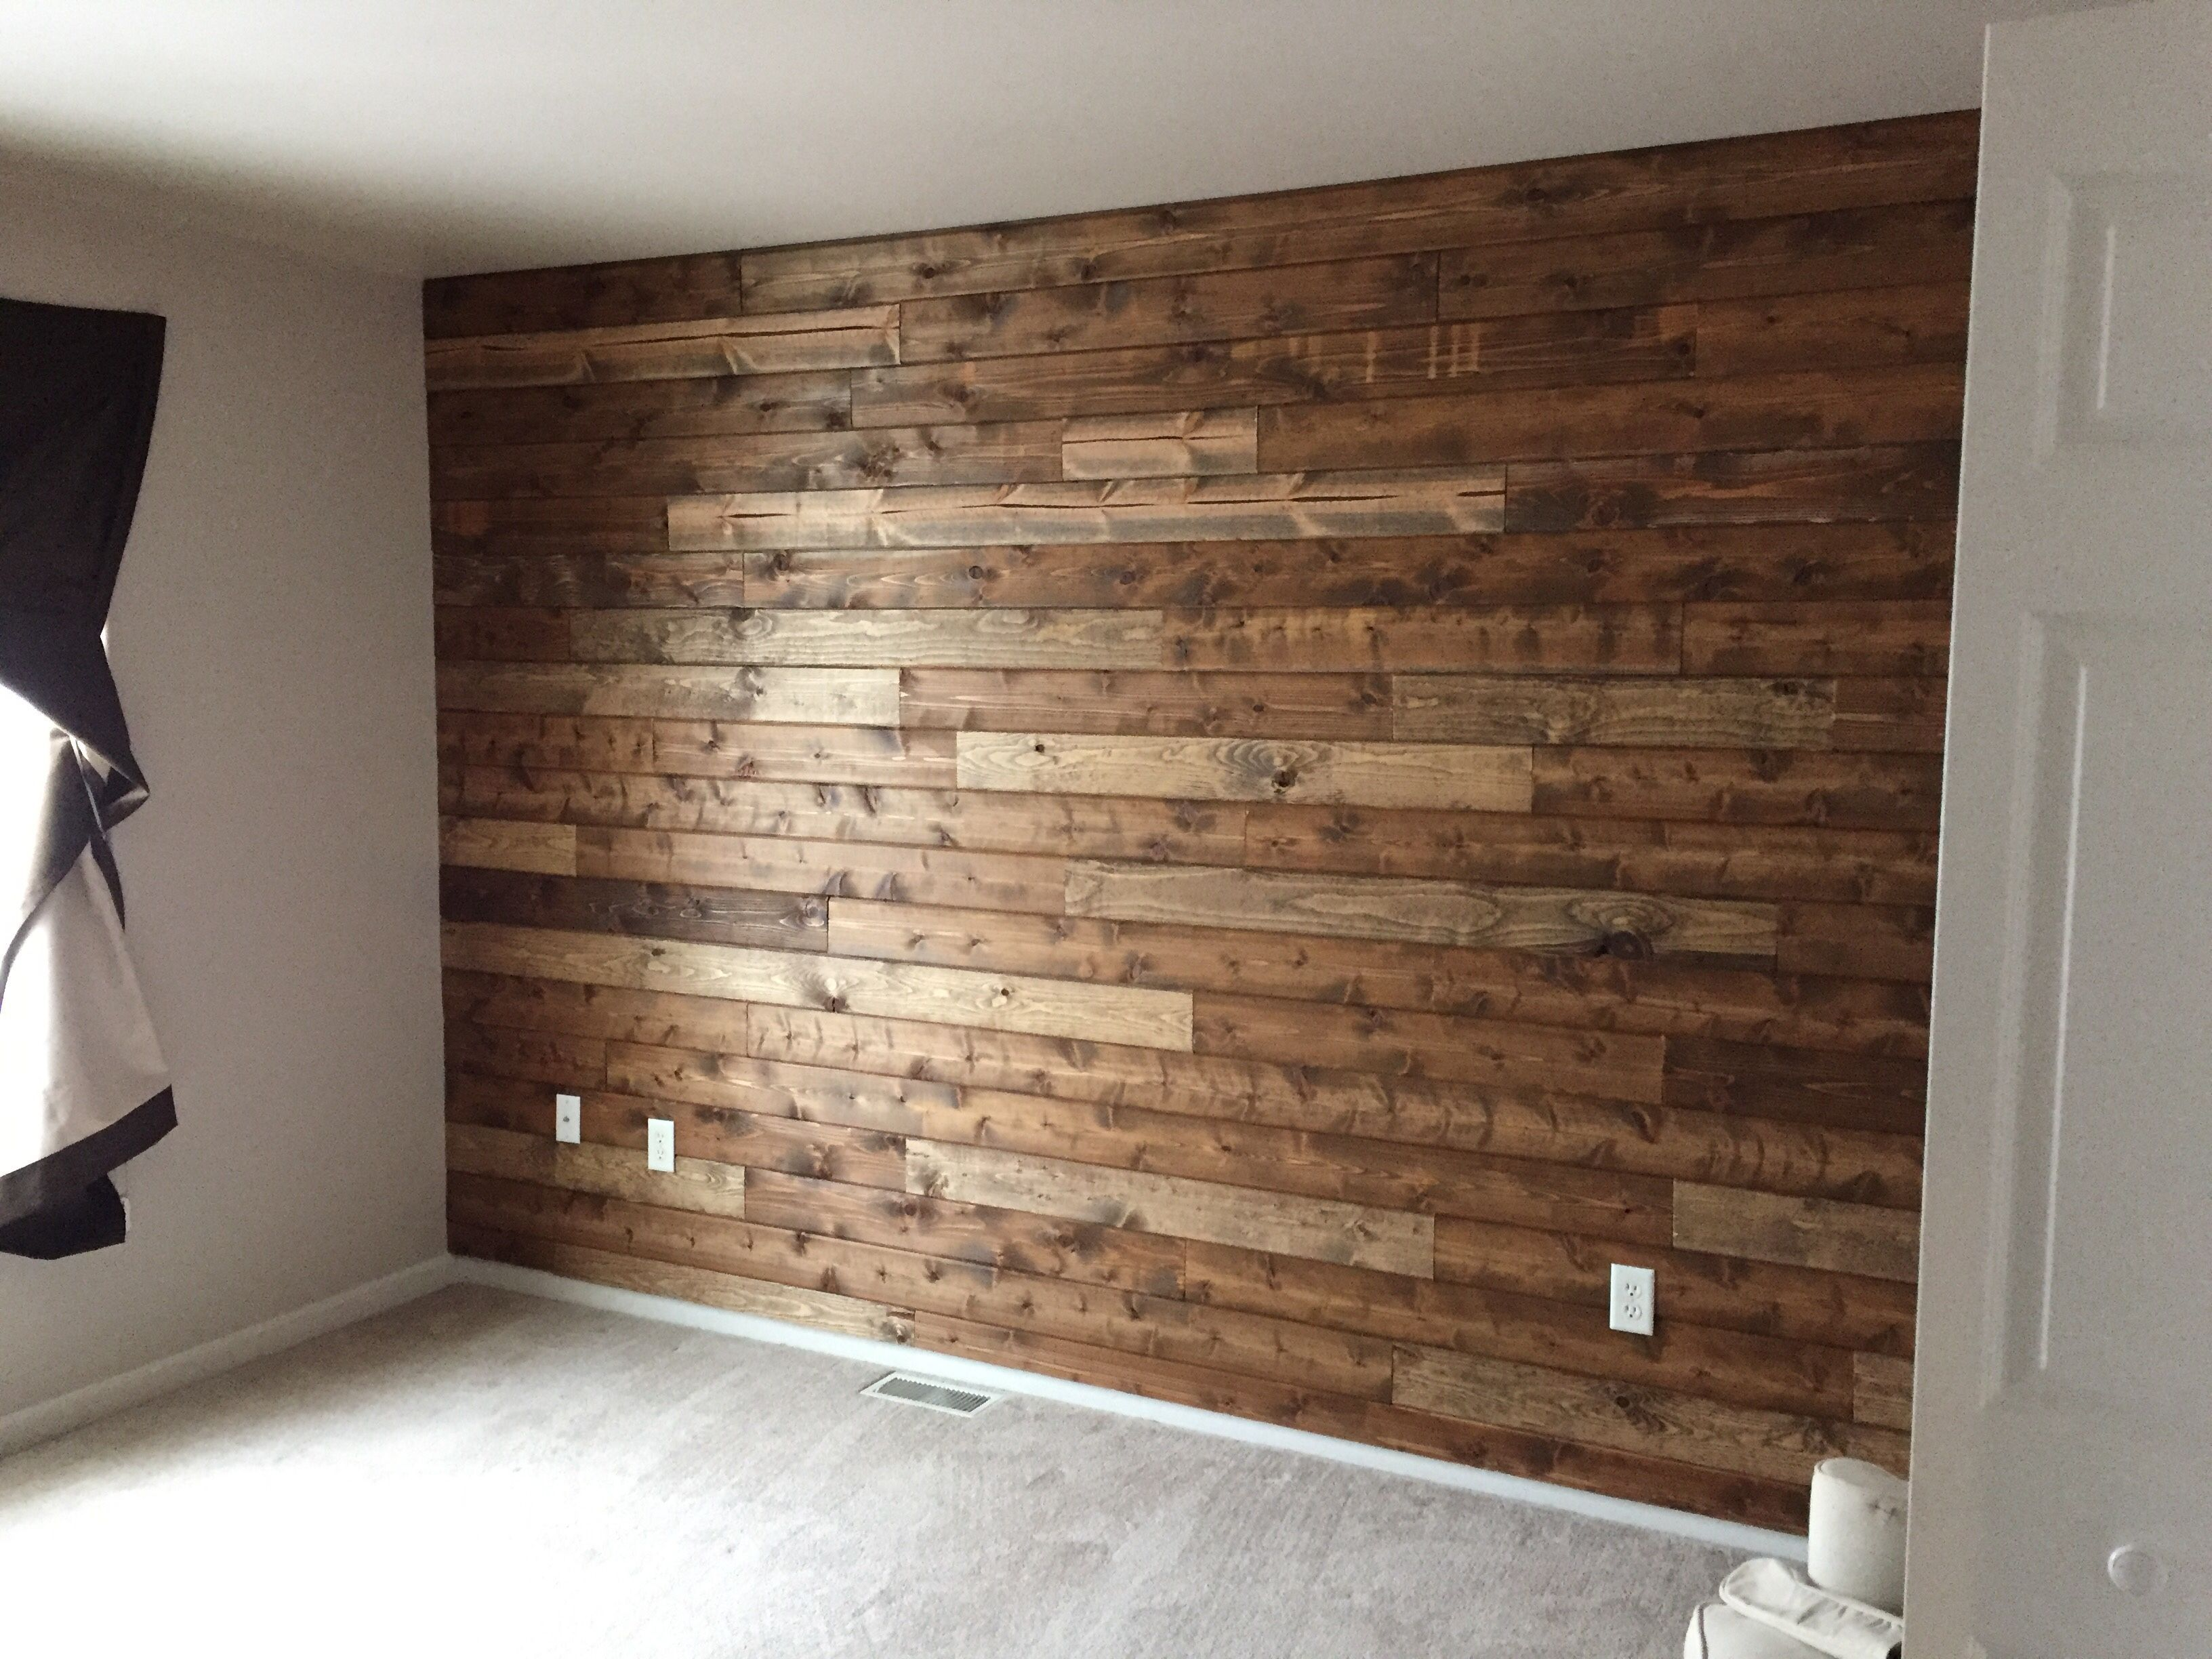 Inspiring Accent Wall Ideas To Change An Area Bedroom Living Room Brown Rustic Dining Wood Office Bathroom Kitchen Livingroom Hallways